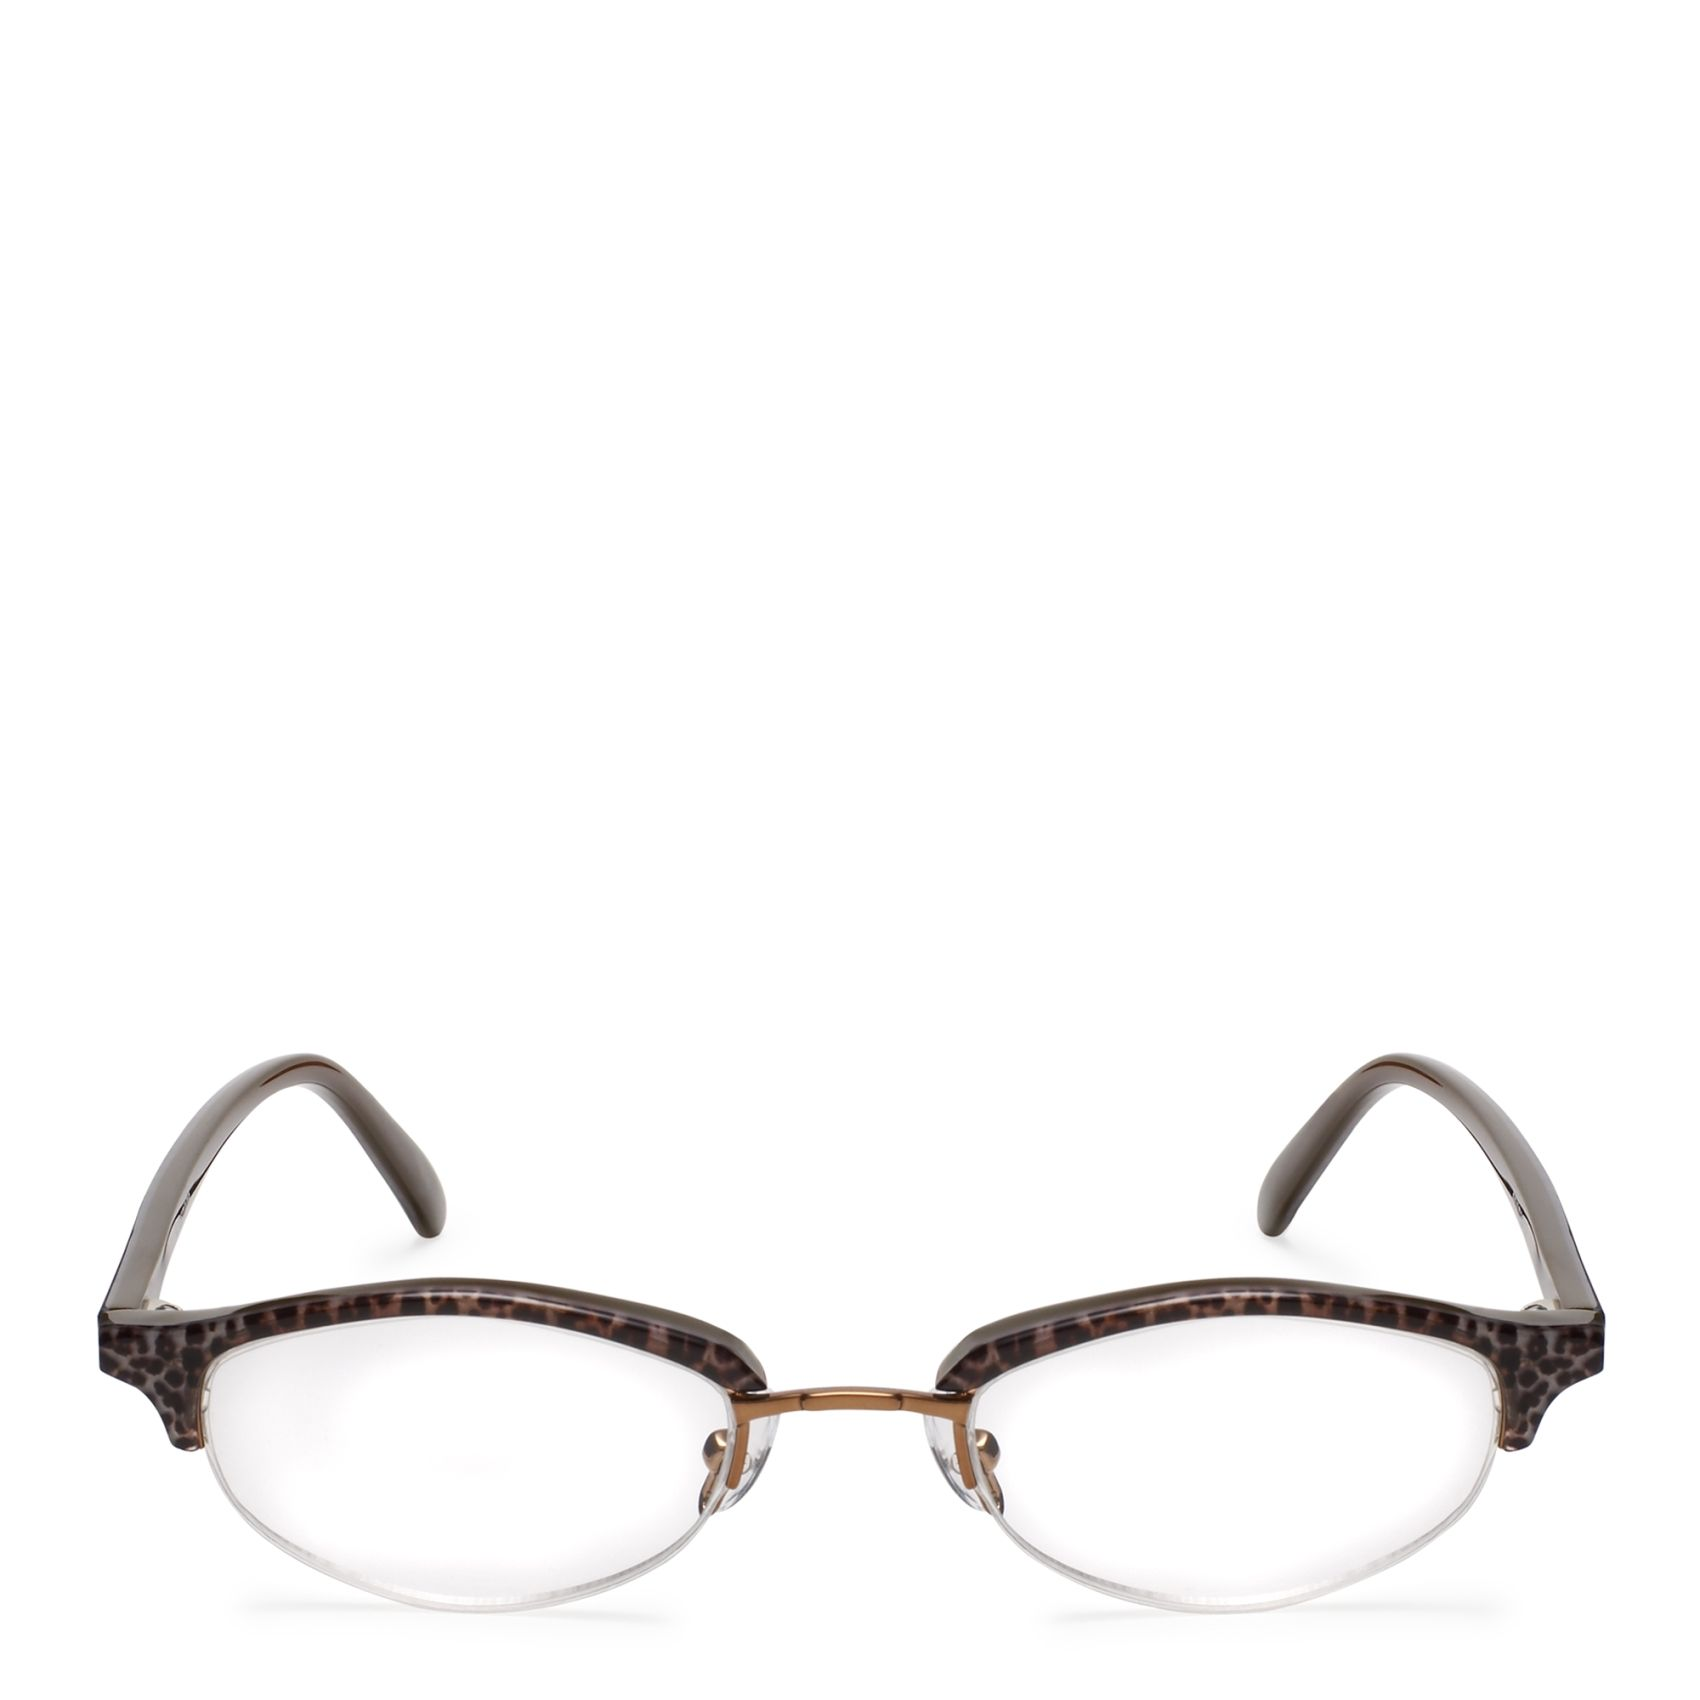 Kate Spade \'Felice\' Reading Glasses | Fashion | Pinterest